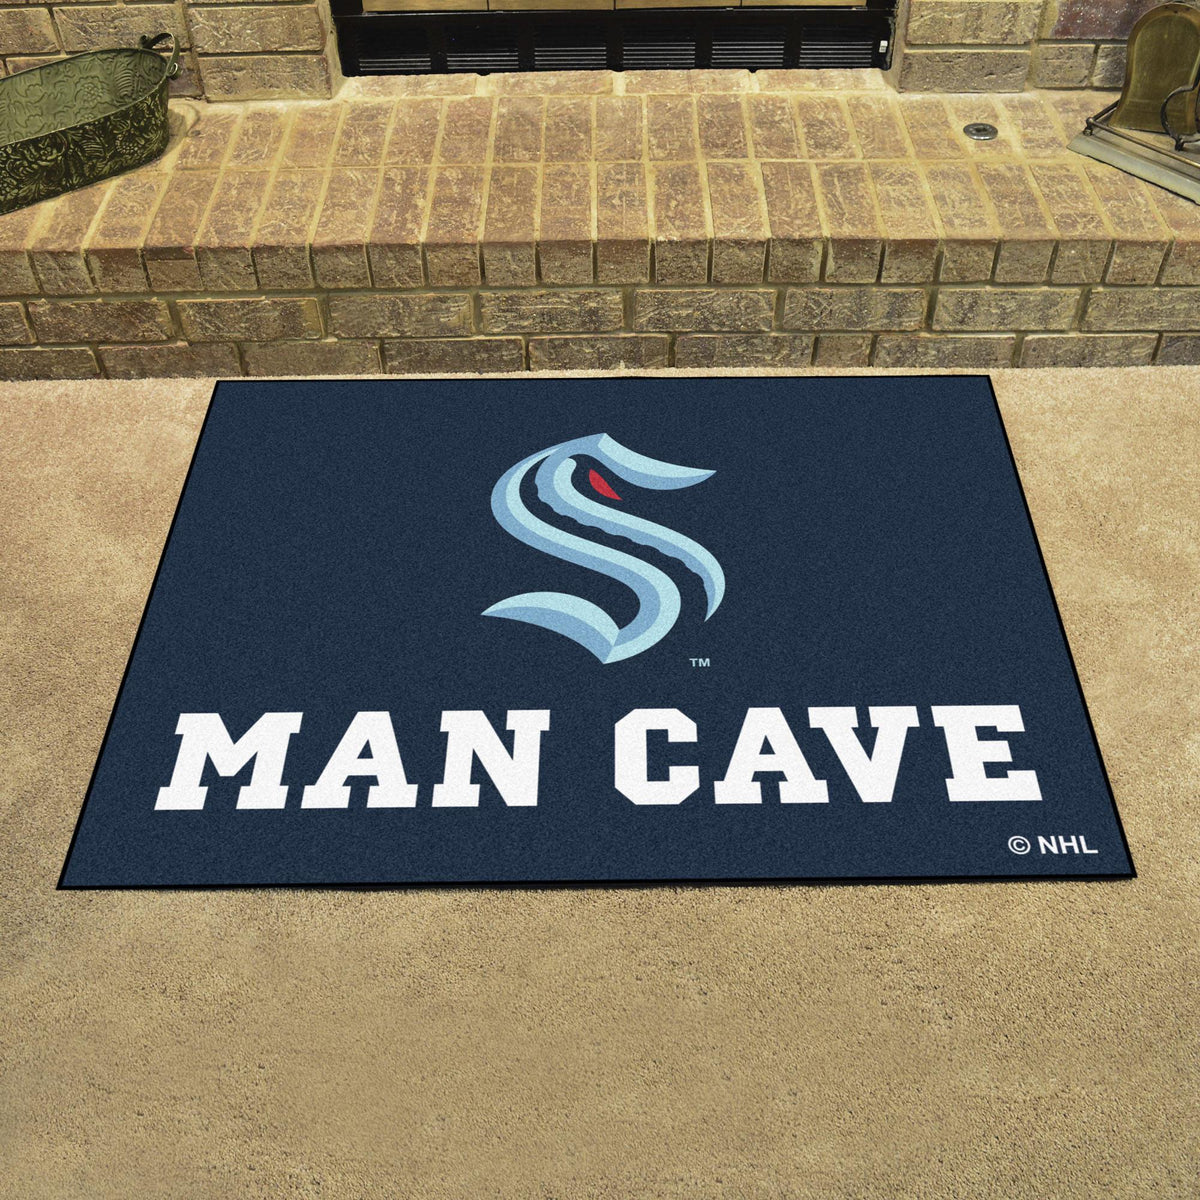 NHL - Man Cave All-Star NHL Mats, Rectangular Mats, Man Cave All-Star Mat, NHL, Home Fan Mats Seattle Kraken